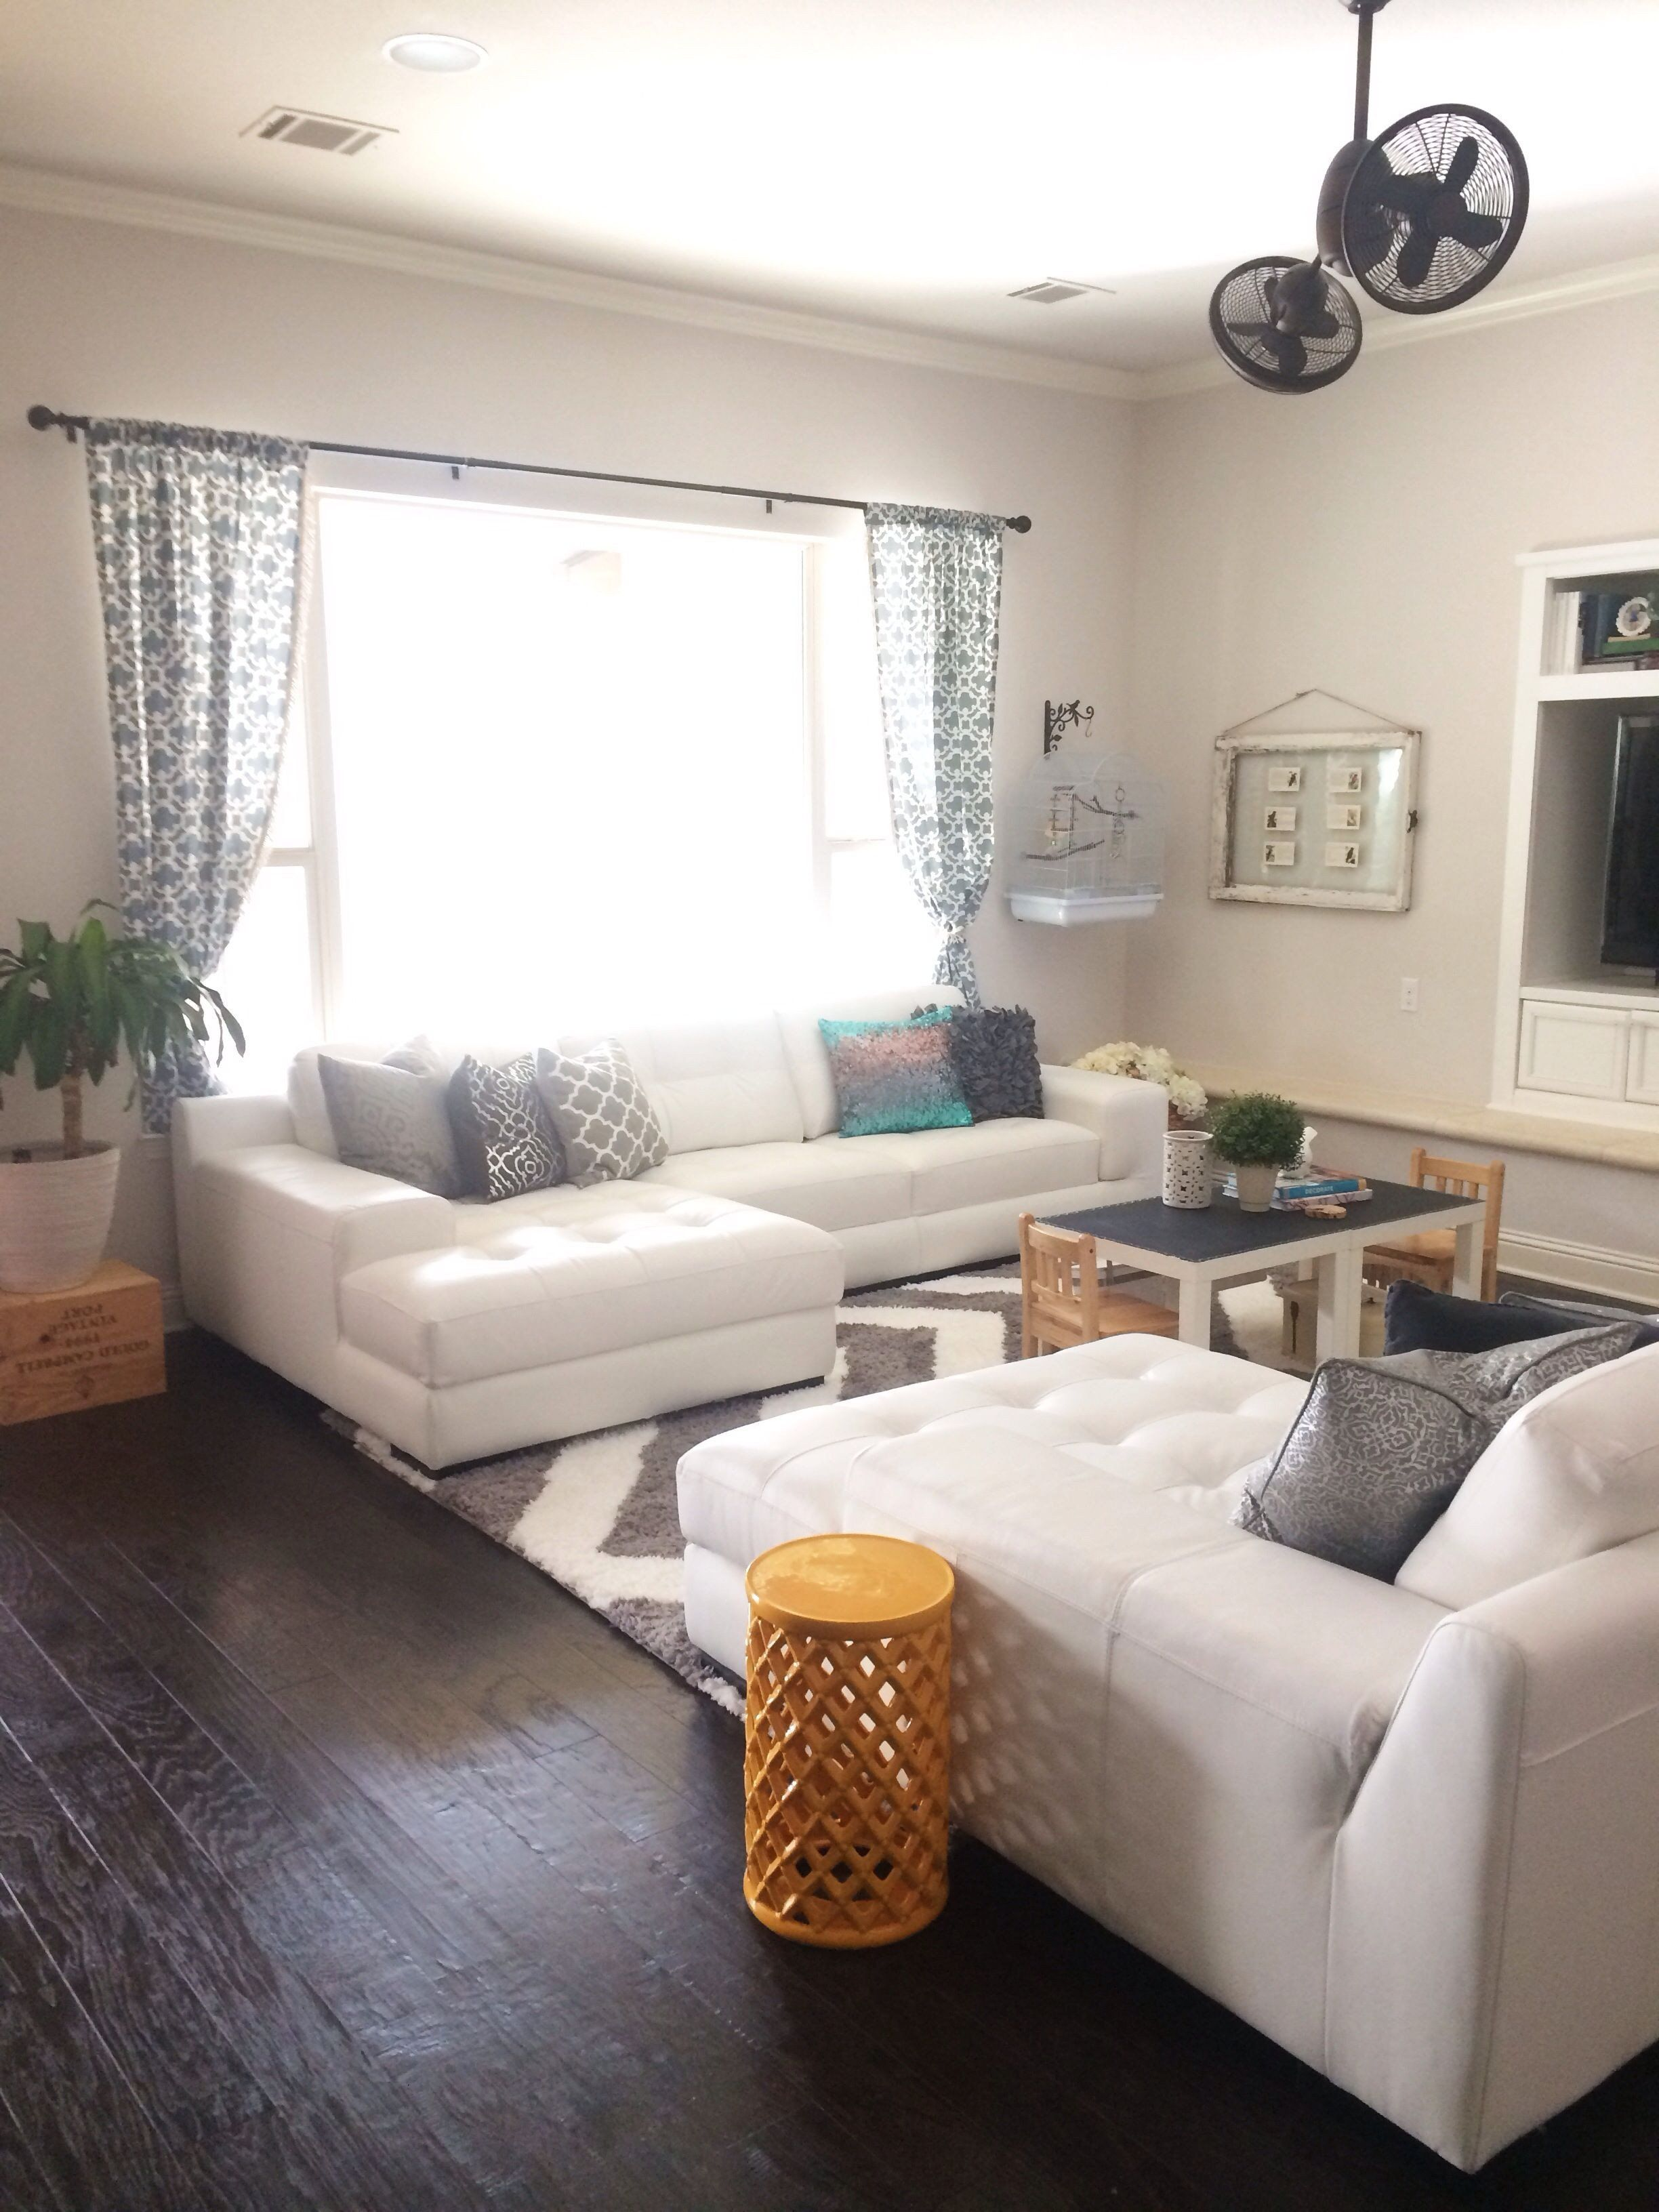 Living Room Decor With Sectional My Living Room 2 Leather Sectionals Facing Leather Sectional Living Room Sectional Living Room Decor Leather Sofa Living Room